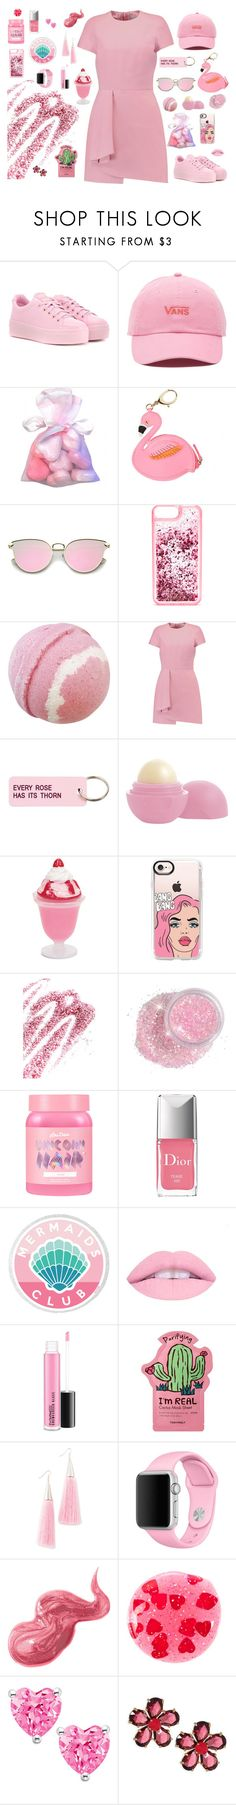 """""""Pink #7"""" by marthaamayacastillo-stu ❤ liked on Polyvore featuring Kenzo, Vans, Lilly Pulitzer, ban.do, Valentino, Various Projects, Eos, Casetify, Obsessive Compulsive Cosmetics and Lime Crime"""